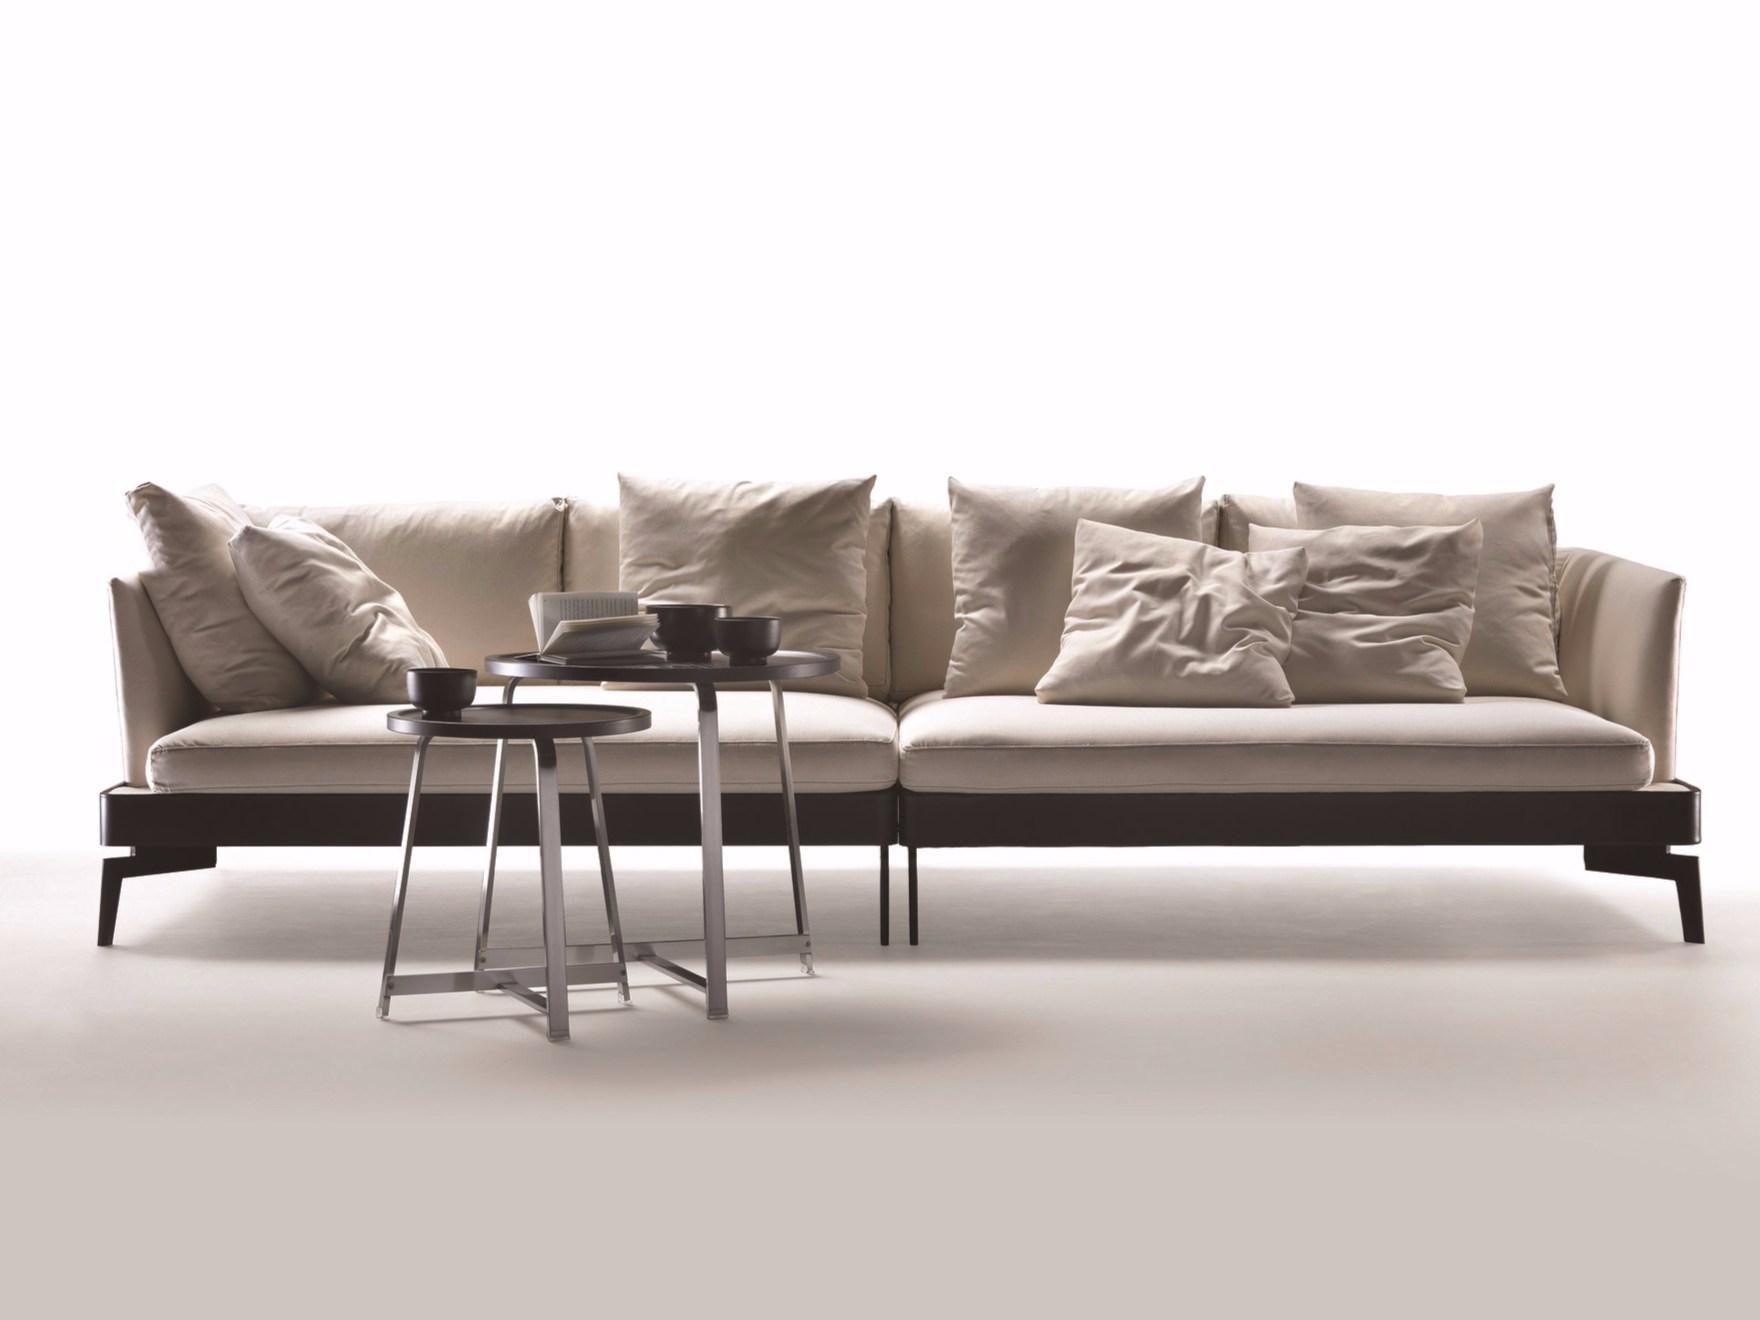 Flexform Sofas And Armchairs | Archiproducts Pertaining To Flexform Sofas (Image 9 of 20)